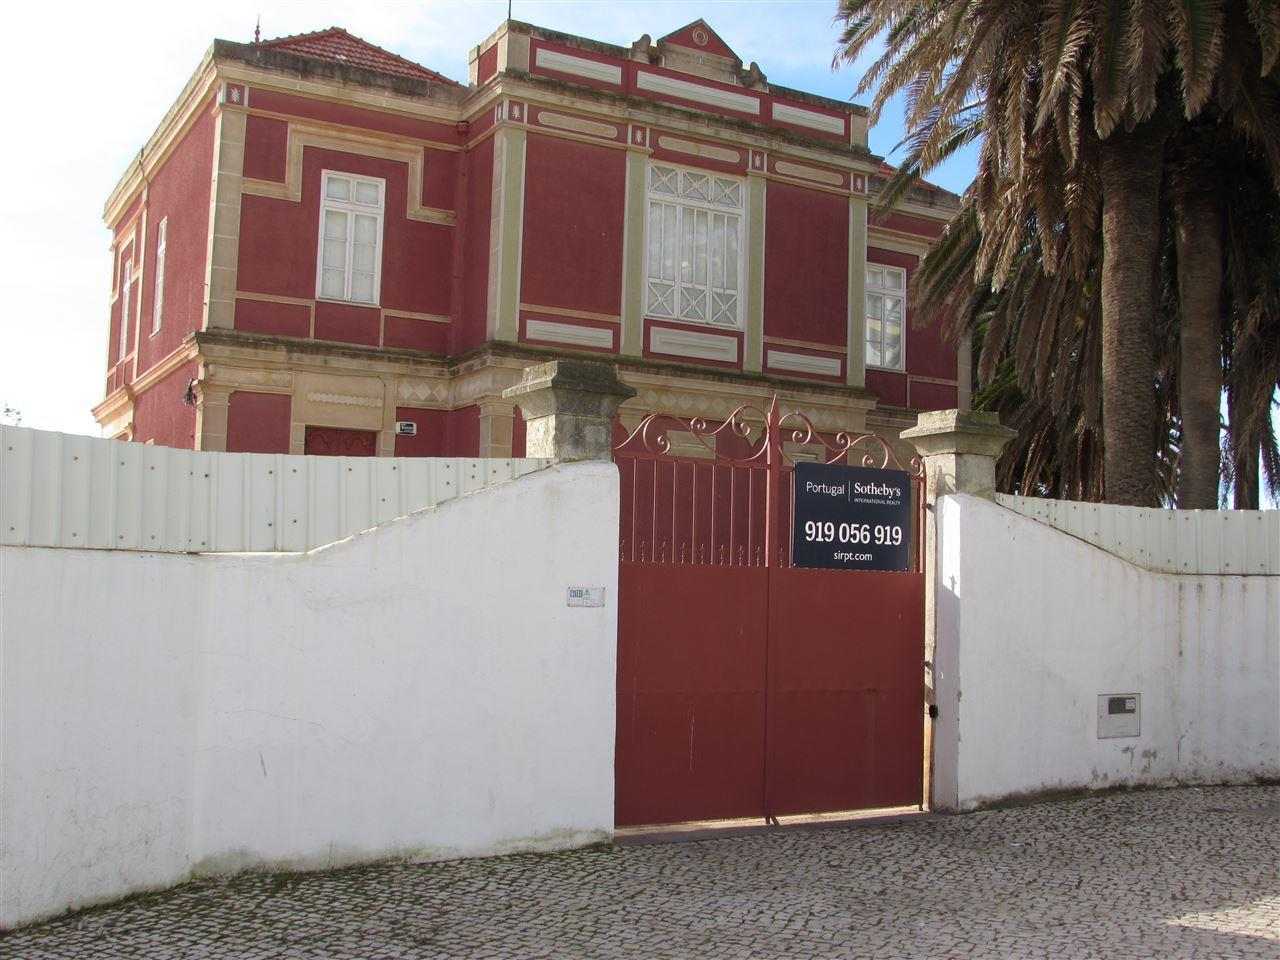 Single Family Home for Sale at House, 7 bedrooms, for Sale Silves, Algarve Portugal